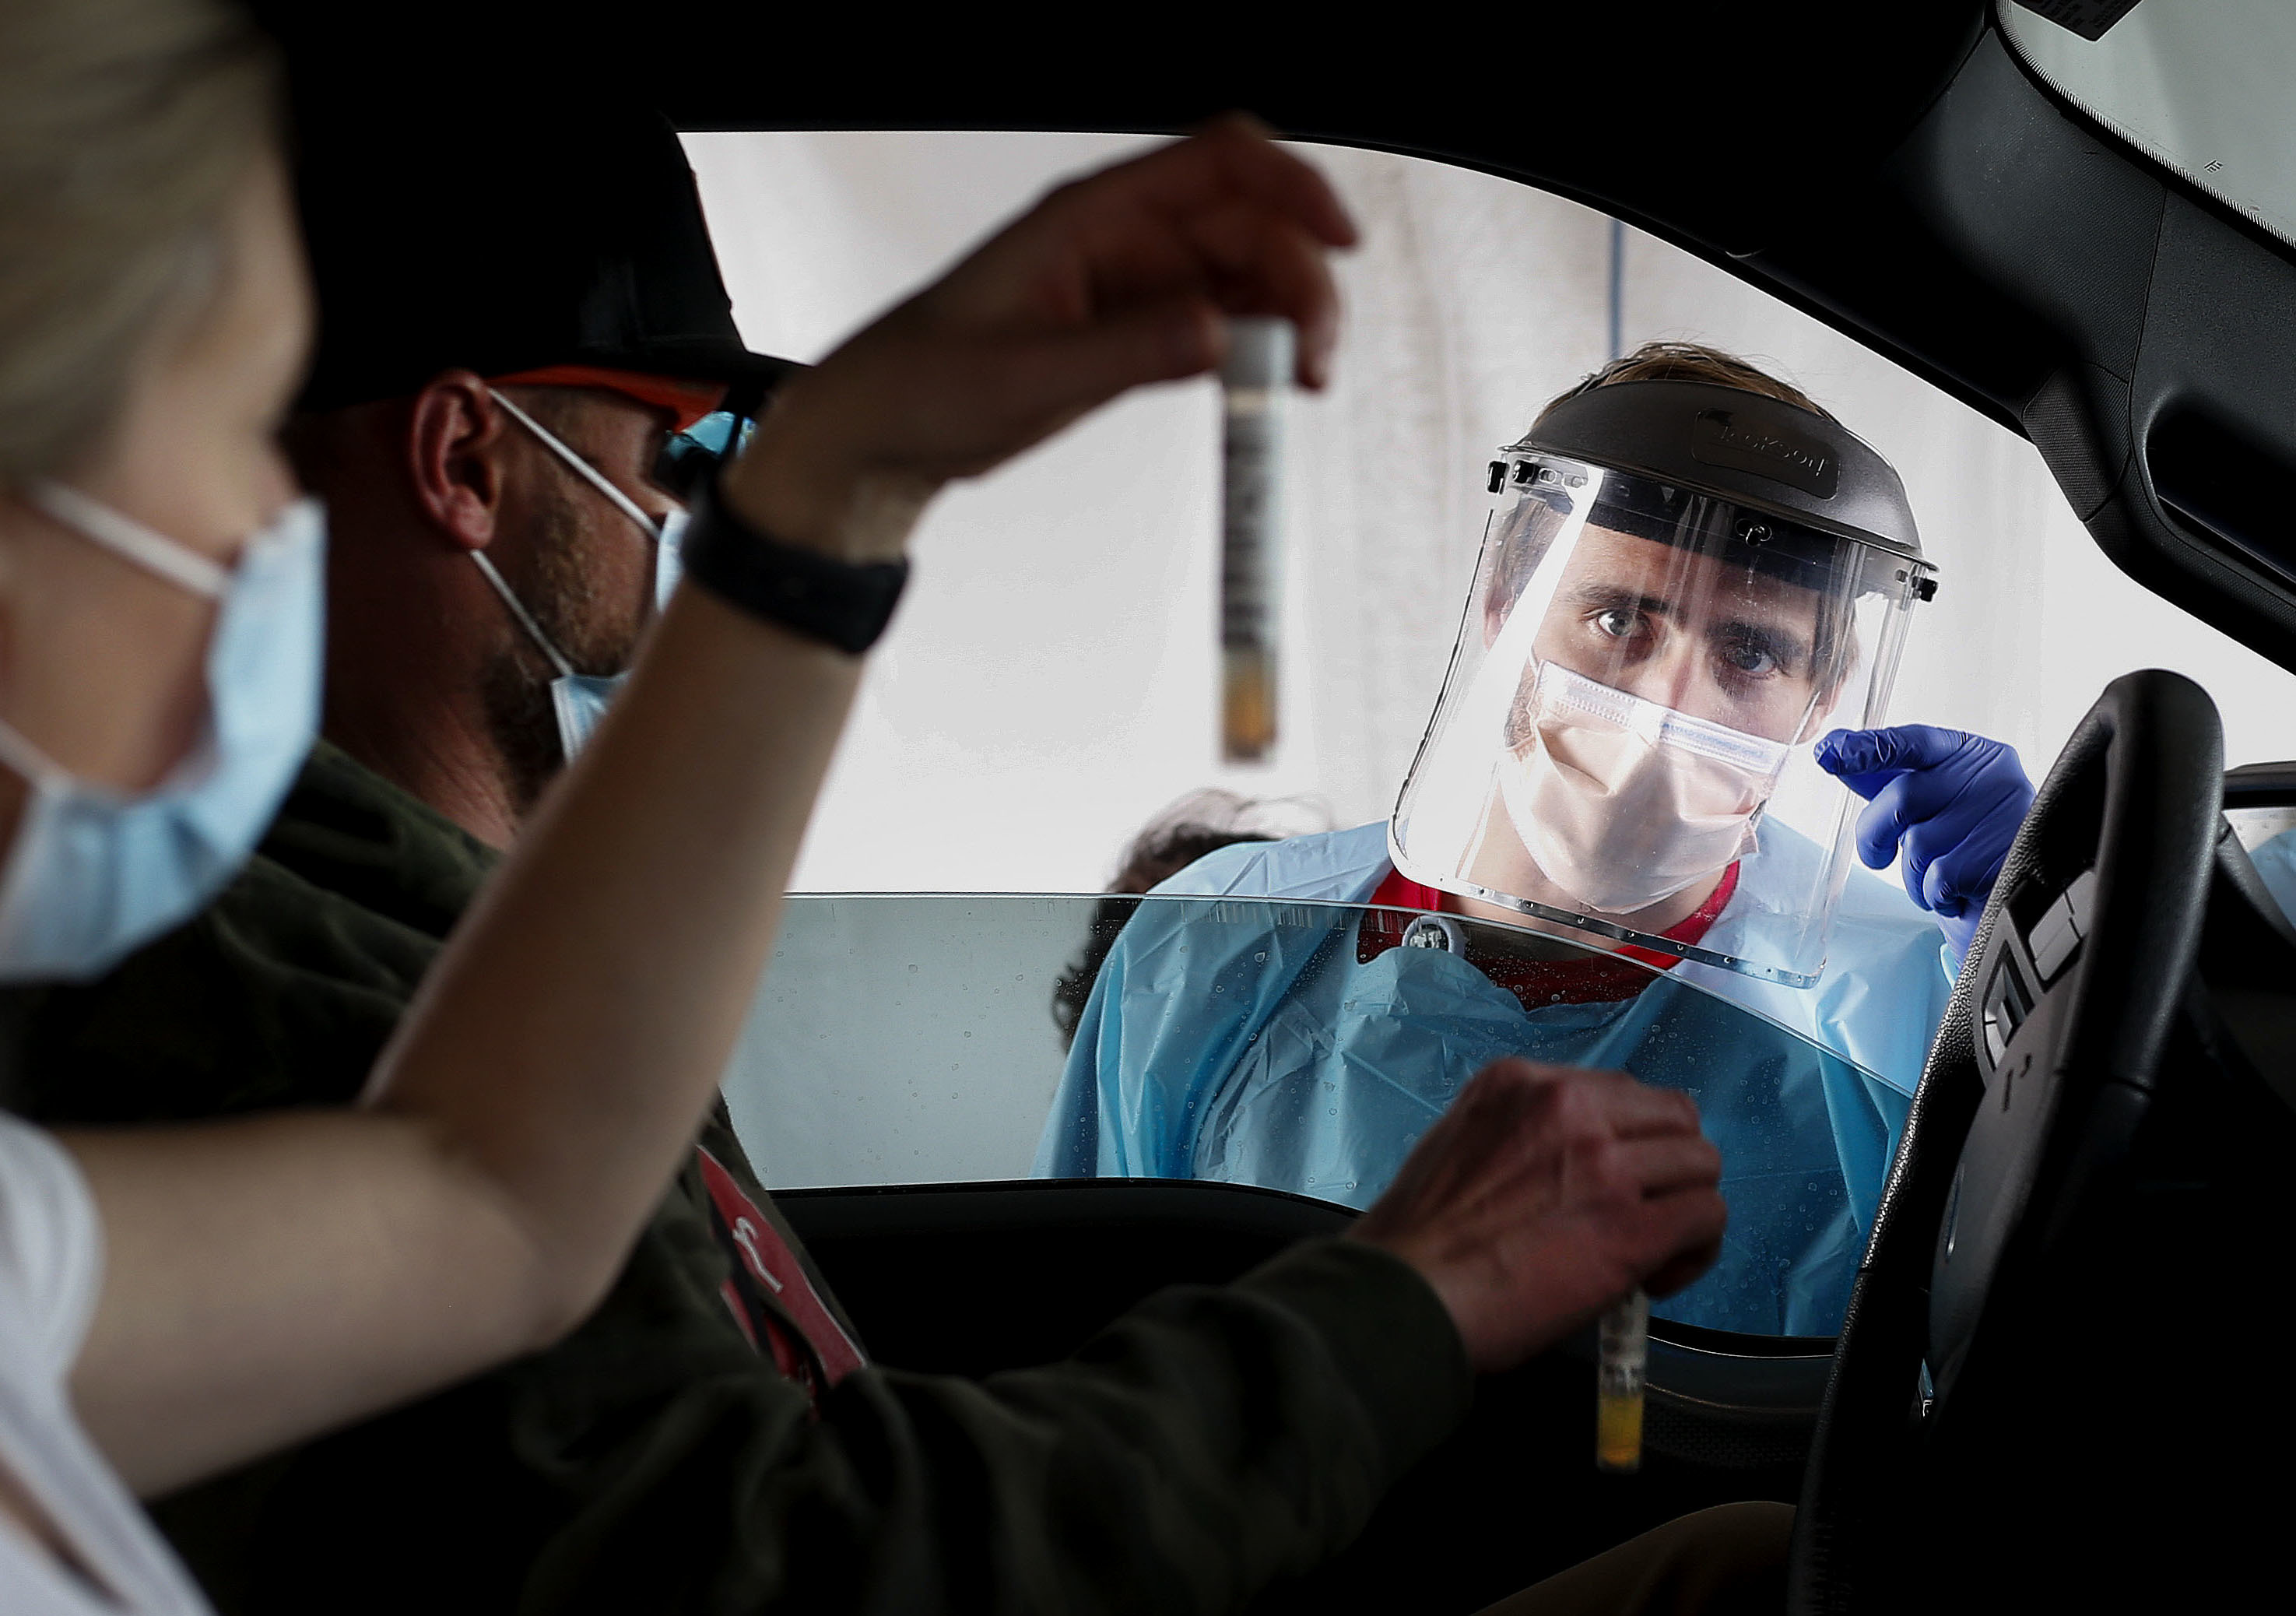 Liz and Sam Rodgers verify their COVID-19 saliva tests to Josh Anderson at a drive-thru test site at University of Utah Health's South Jordan Health Center in South Jordan on Friday, Oct. 2, 2020.